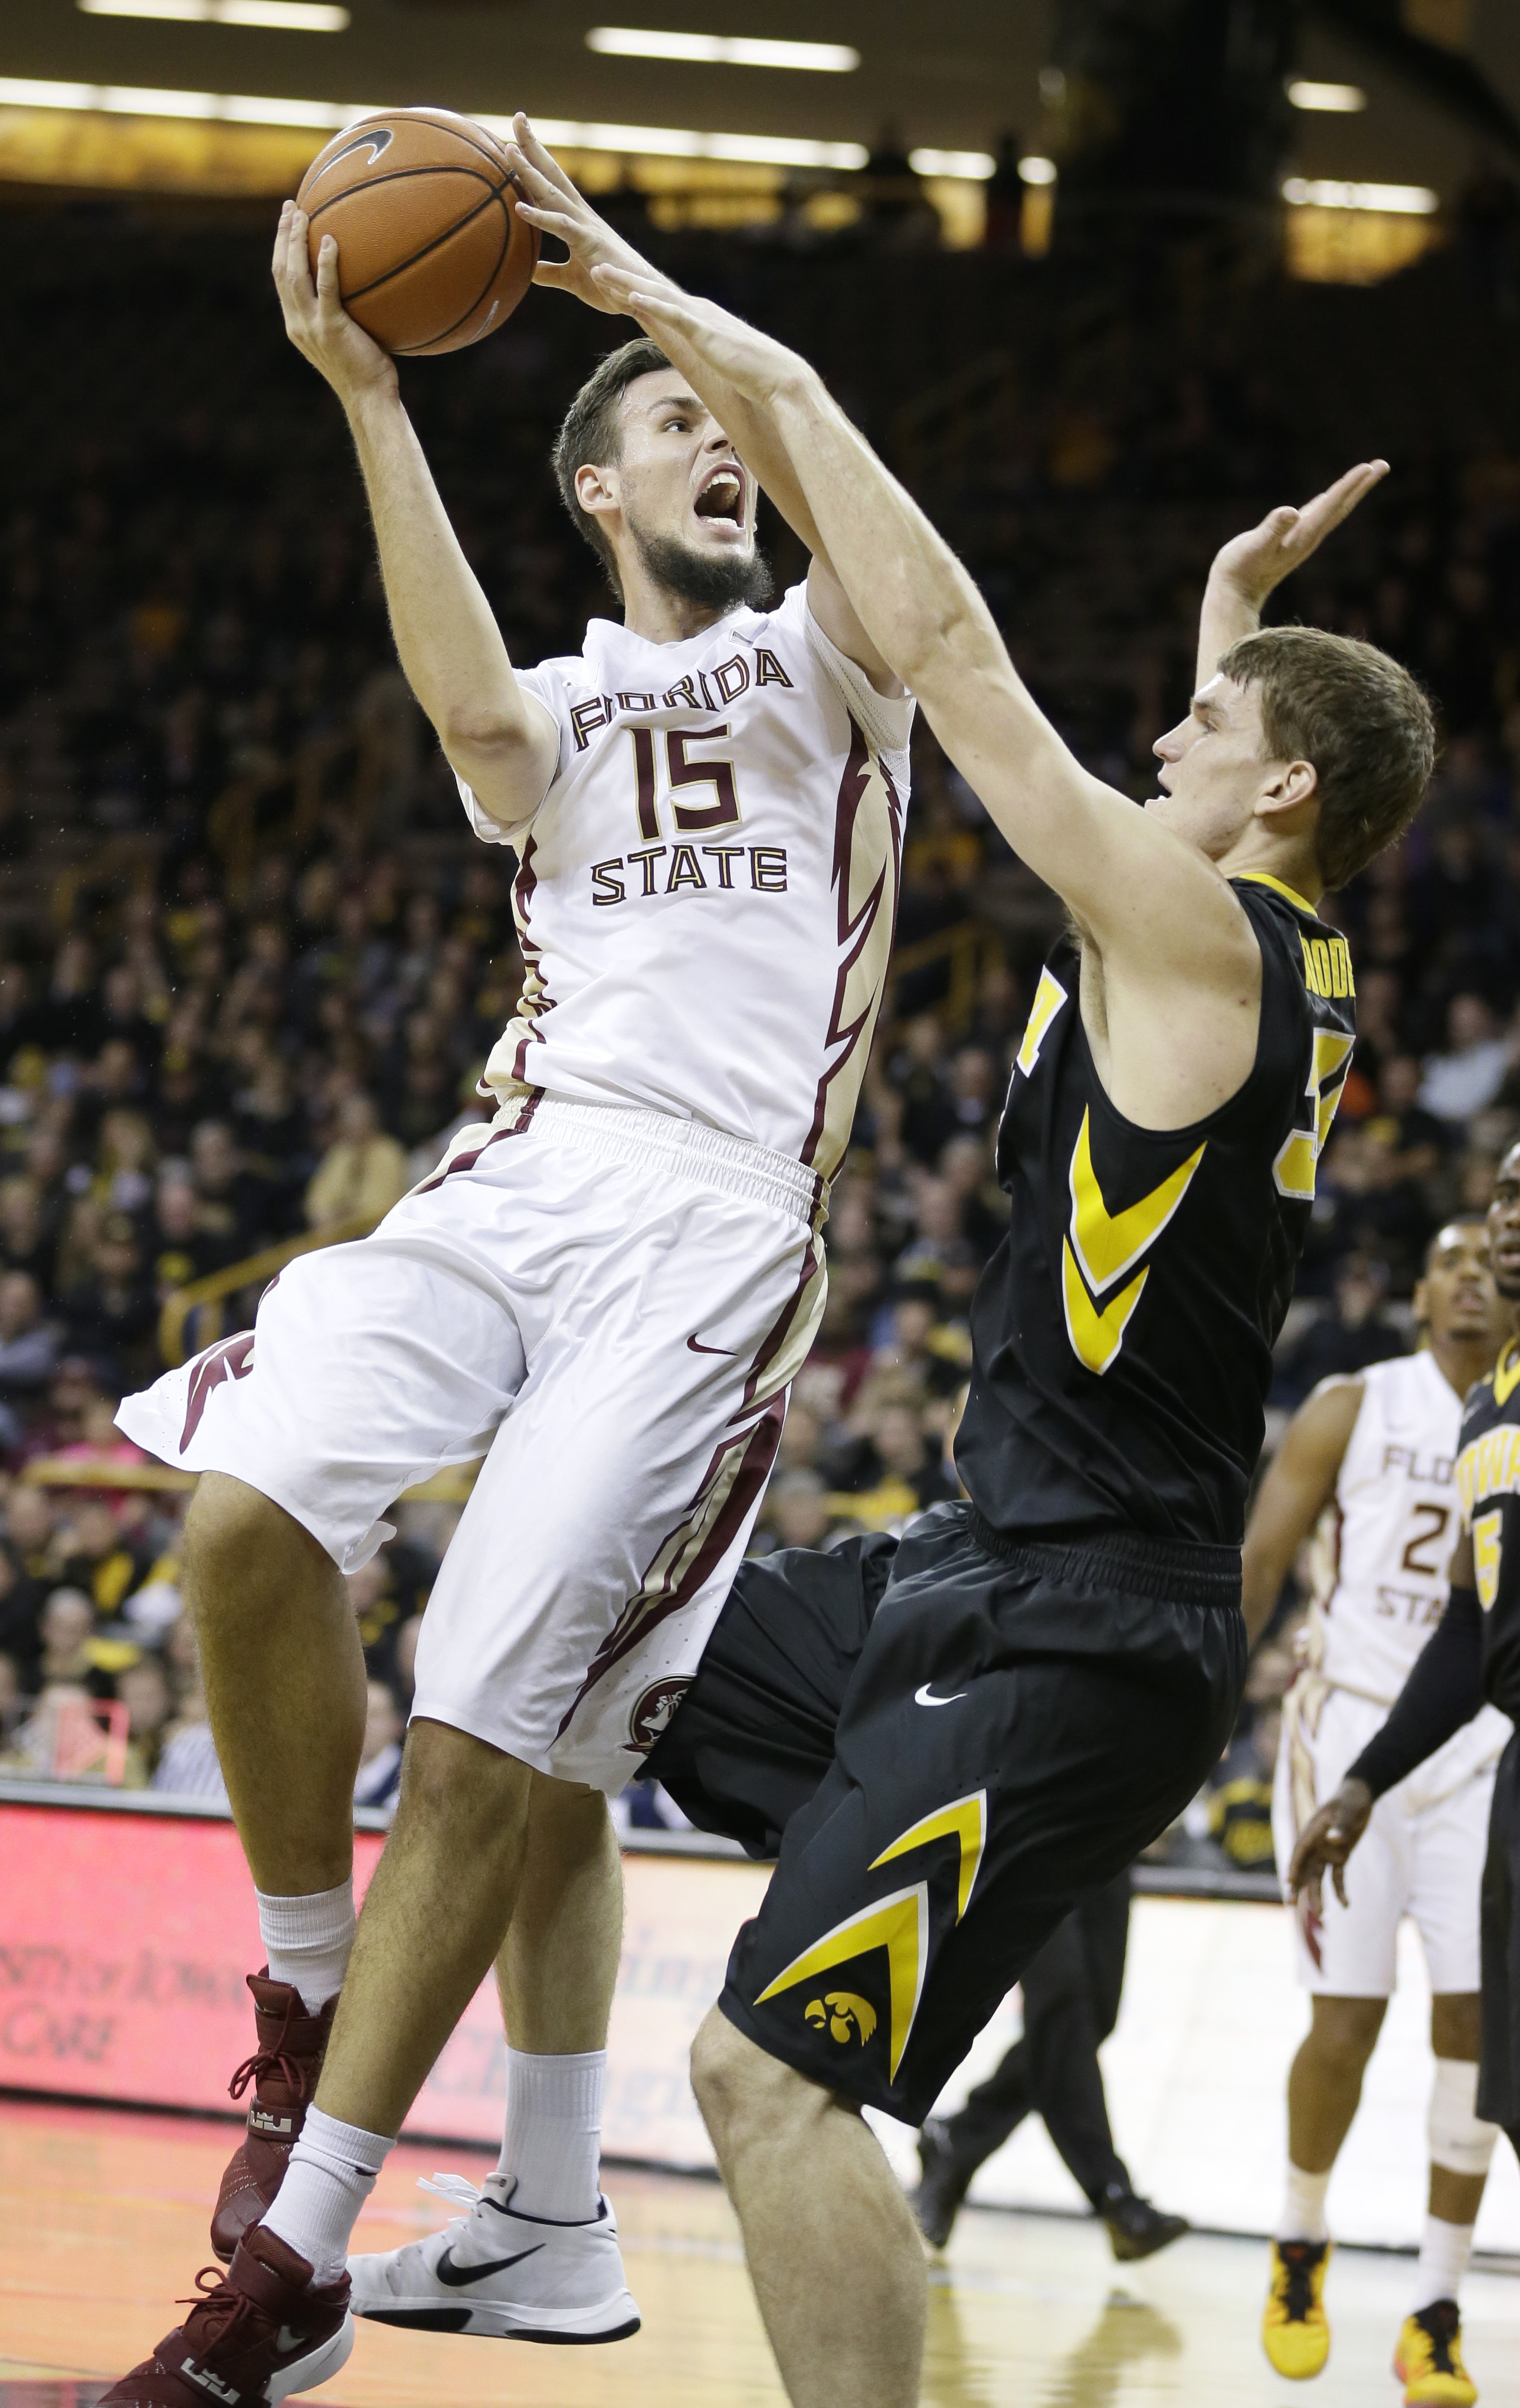 Florida State center Boris Bojanovsky is fouled by Iowa center Adam Woodbury, right, while driving to the basket during the first half of an NCAA college basketball game, Wednesday, Dec. 2, 2015, in Iowa City, Iowa. (AP Photo/Charlie Neibergall)